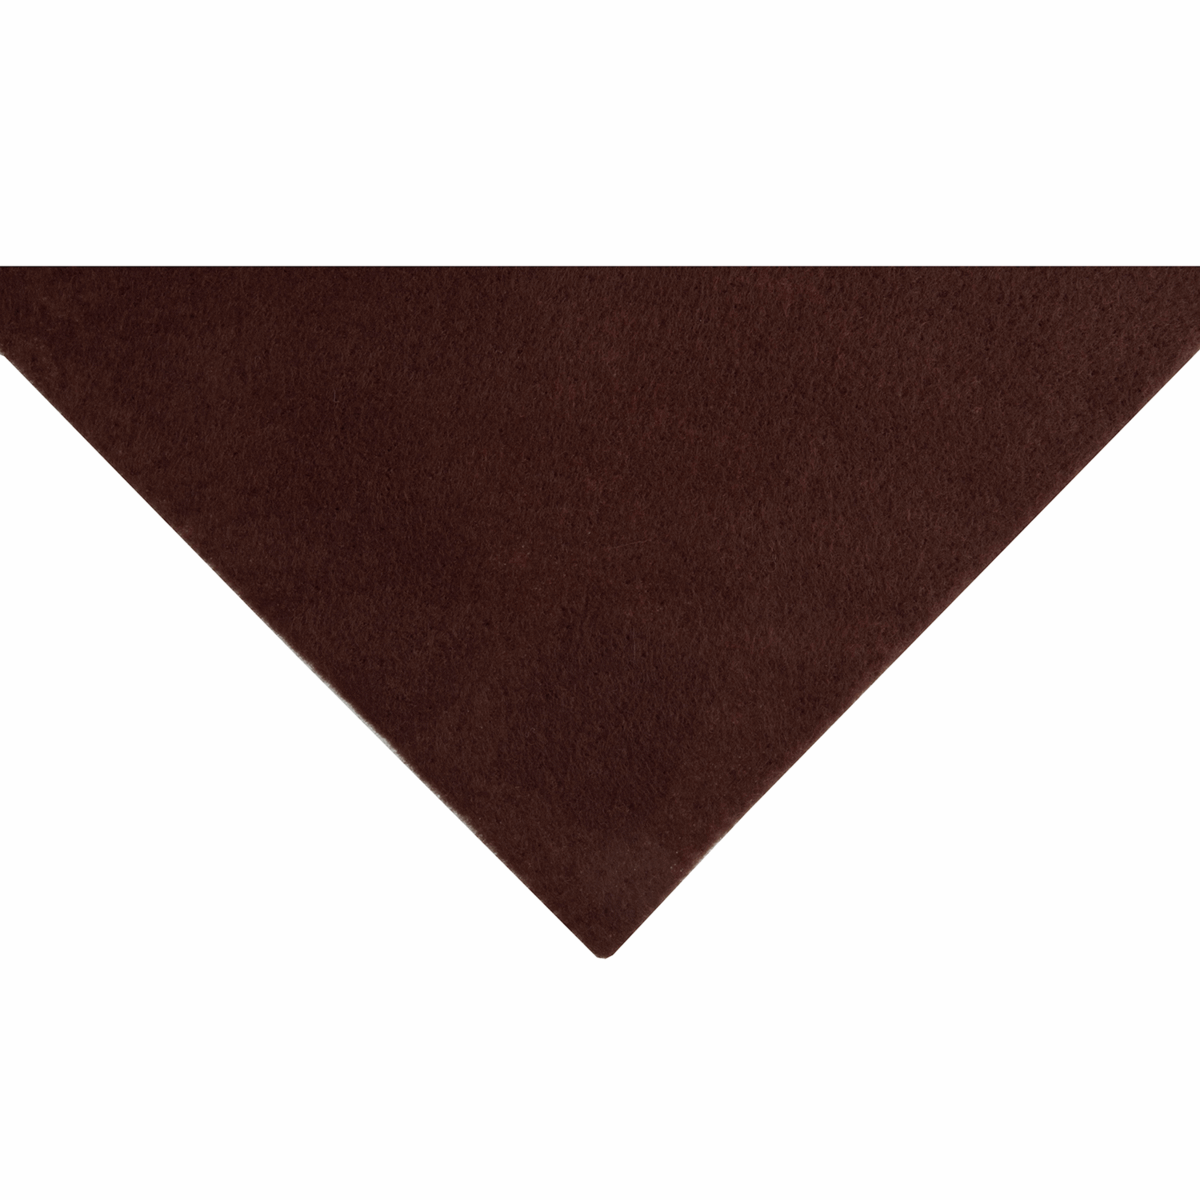 Picture of Felt: Acrylic: : 23 x 30cm: Sticky Back: Brown: 10 Pieces